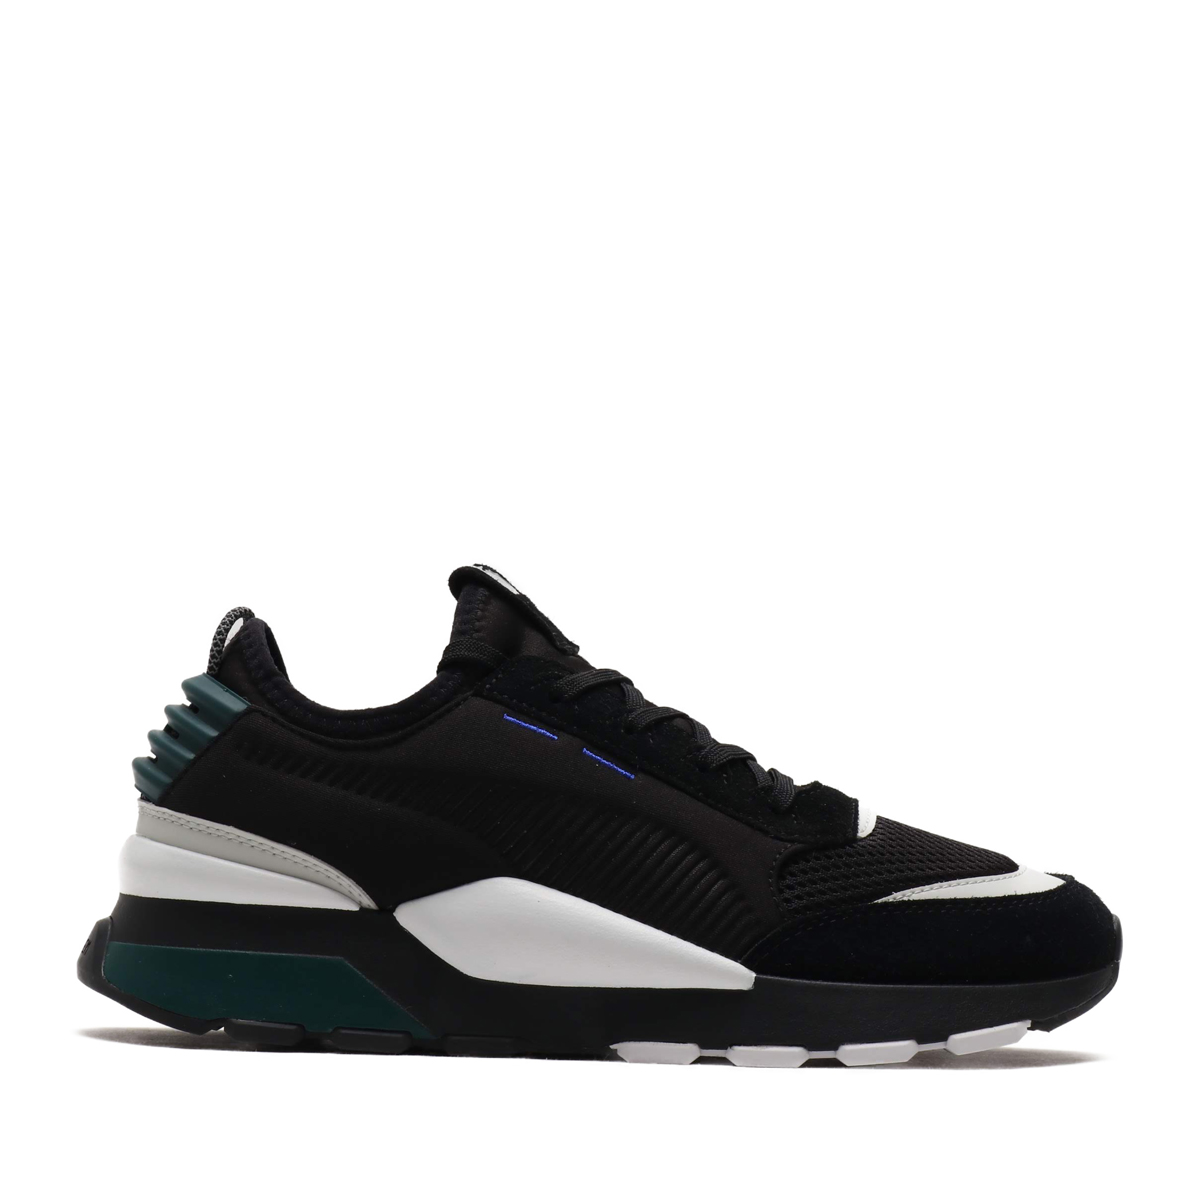 PUMA RS-0 WINTER INJ TOYS (PUMA BLACK-PO) (Puma RS-0 winter INJ toys) 892aaa35b